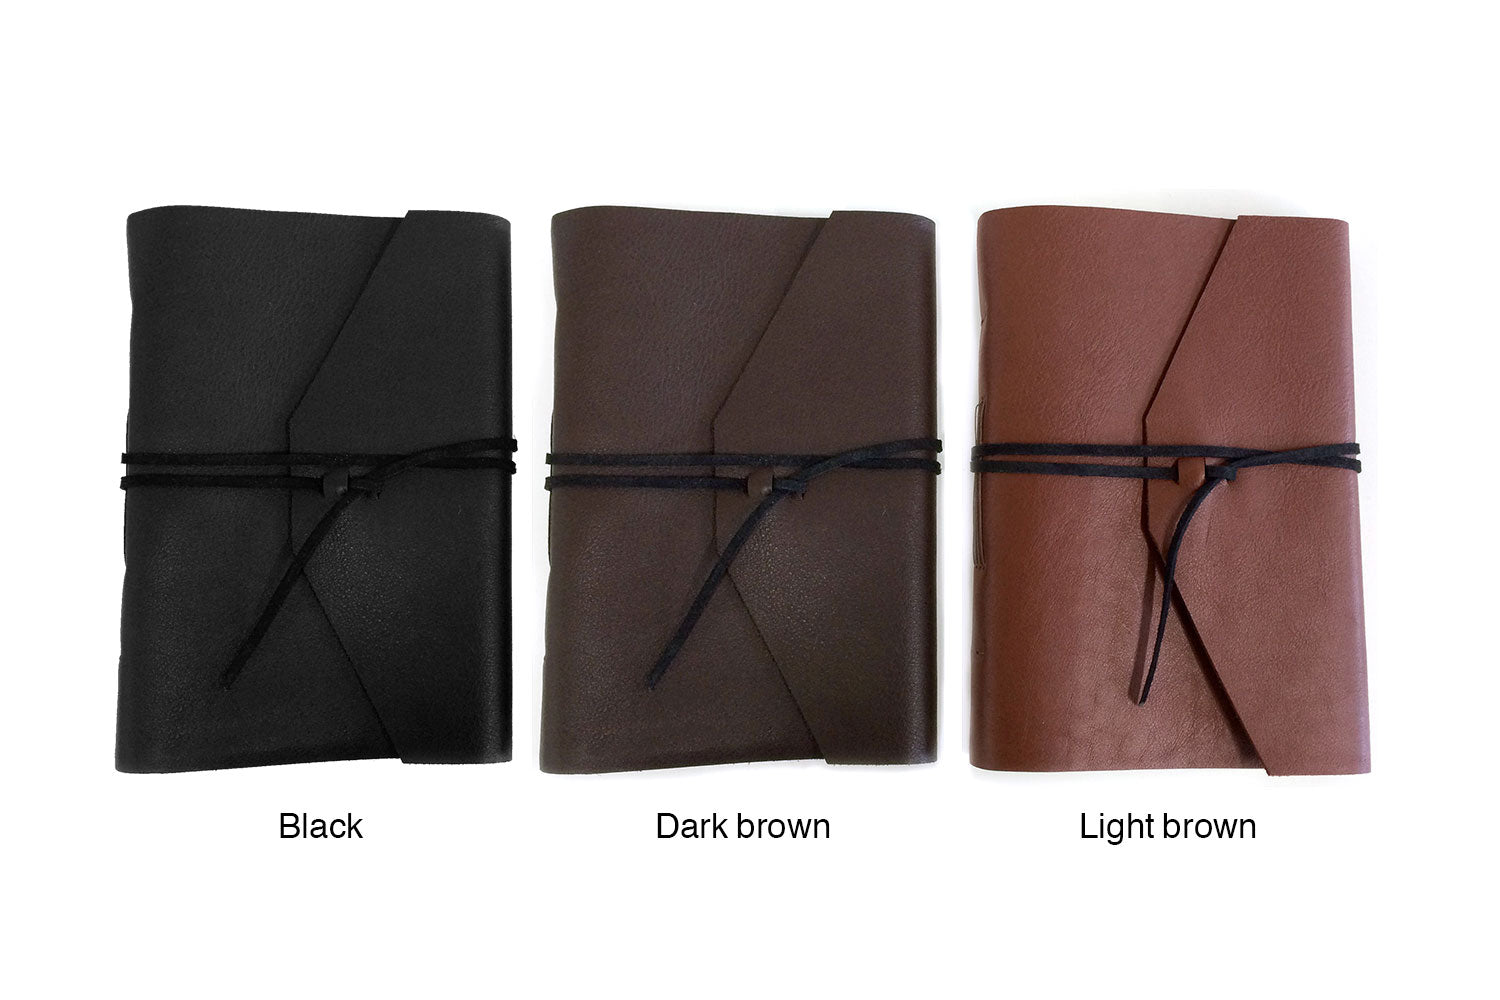 leather guest book in black leather, dark brown leather, light brown leather